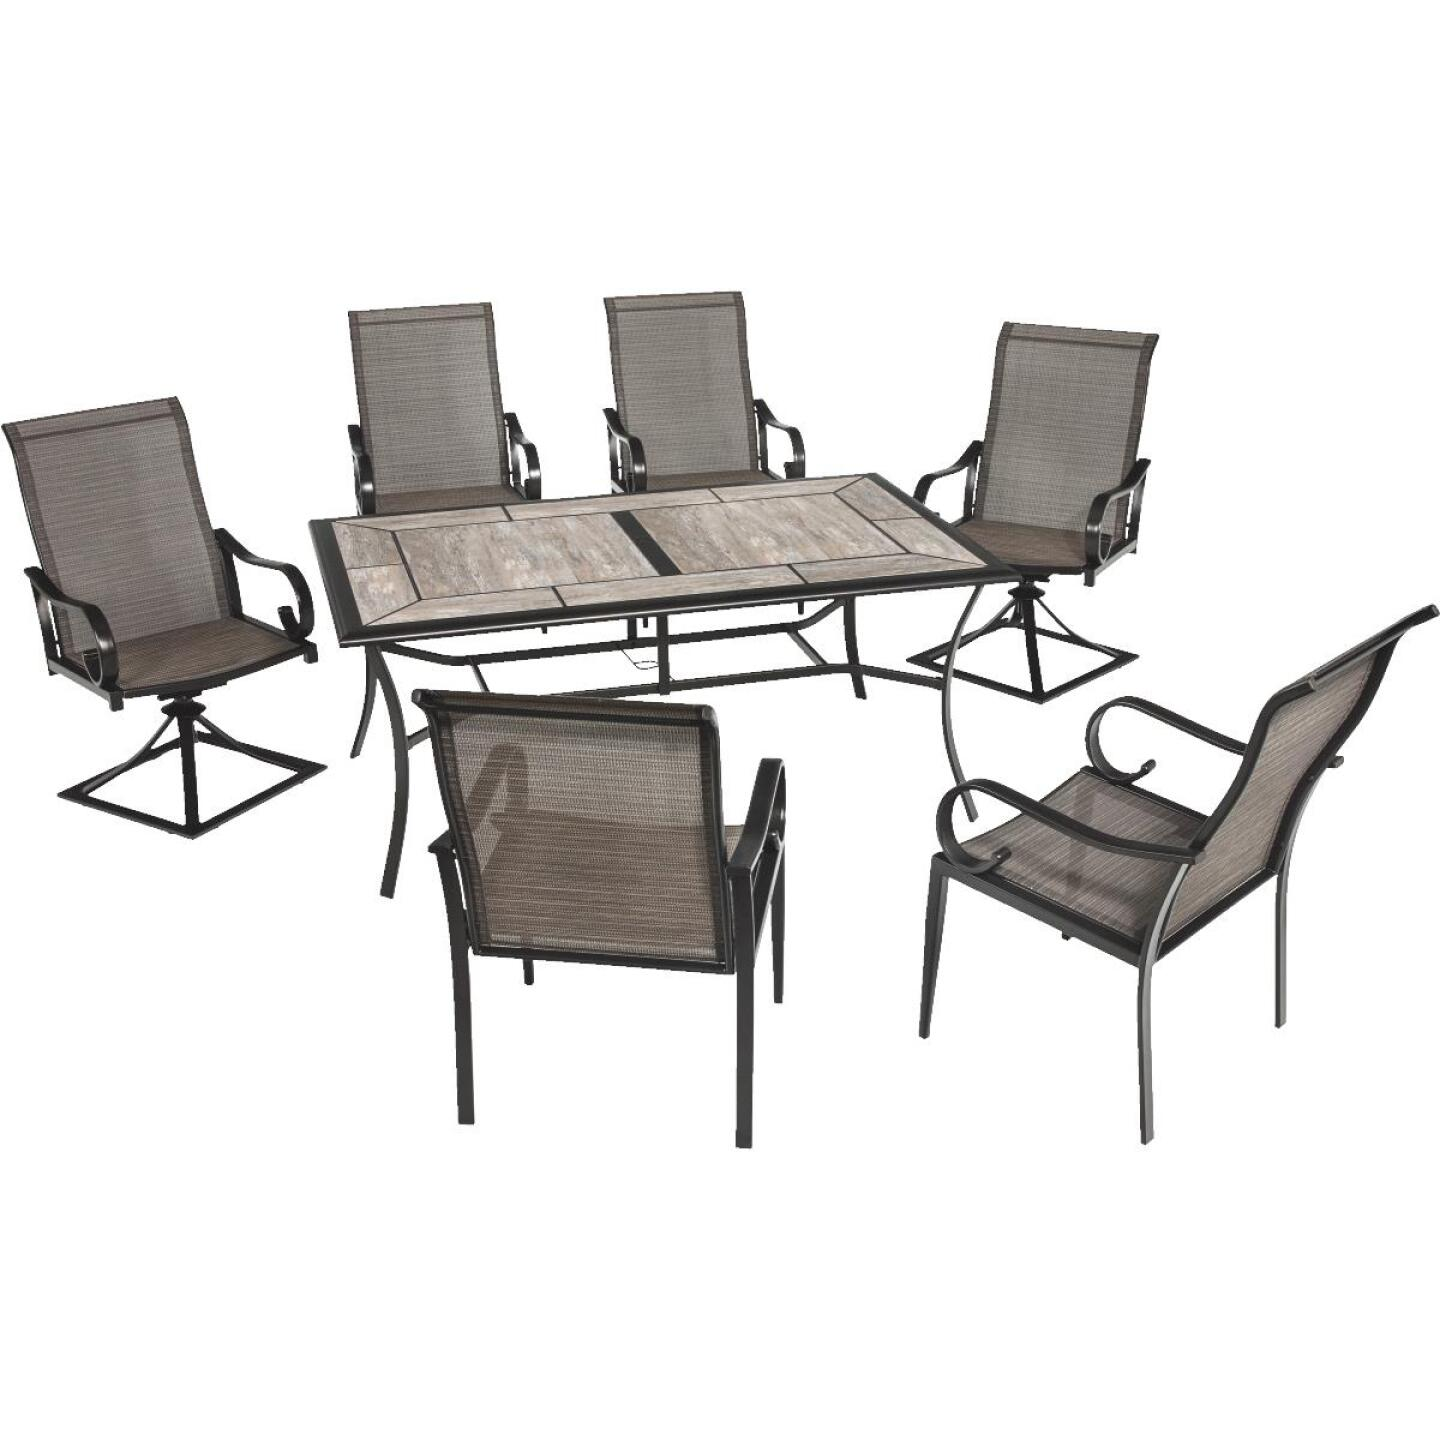 Outdoor Expressions Berkshire 7-Piece Dining Set Image 168